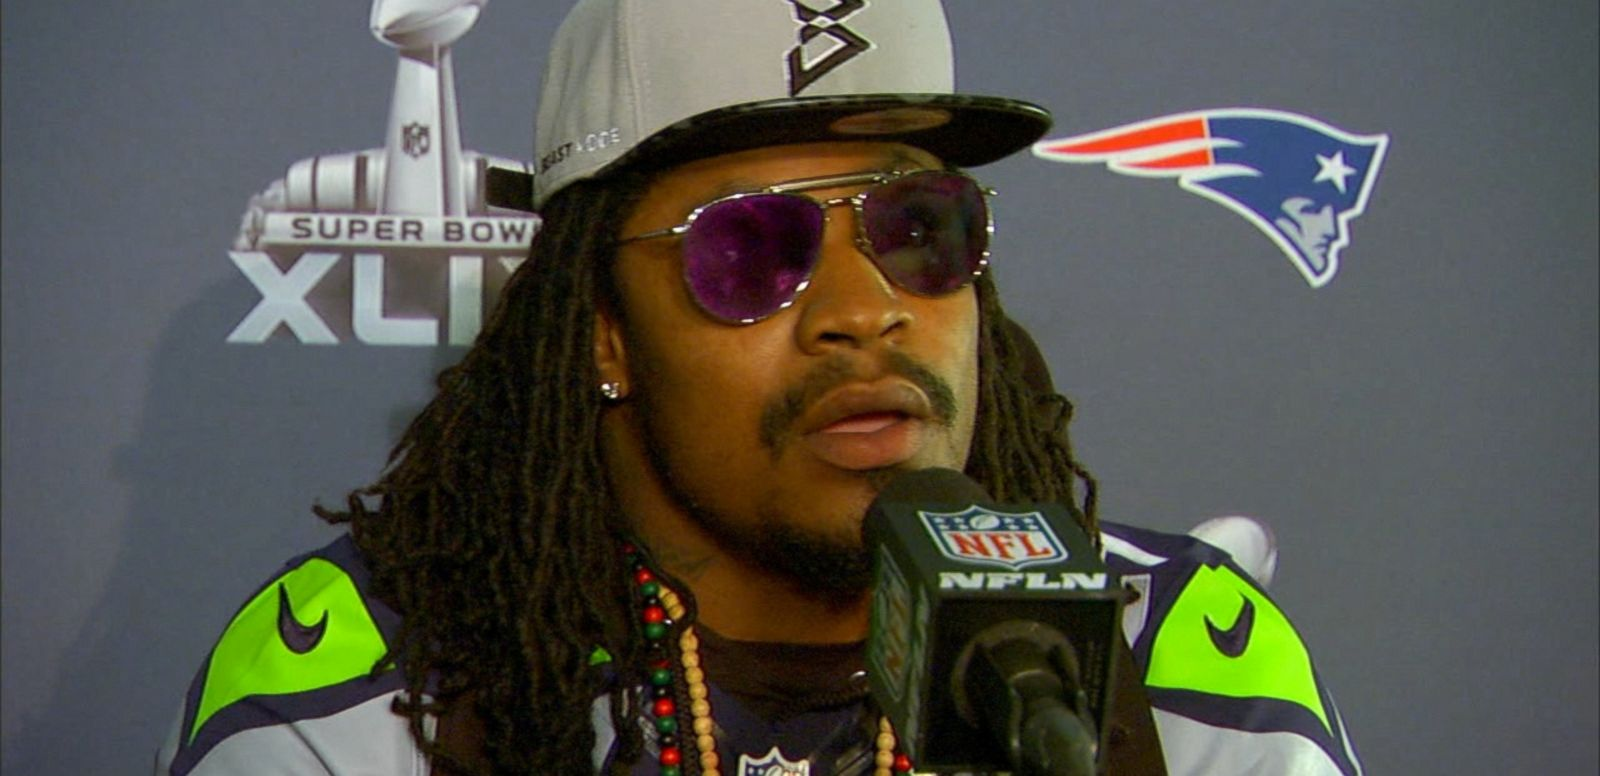 VIDEO: Marshawn Lynch addressed the media with a new catchphrase that got a lot of use.